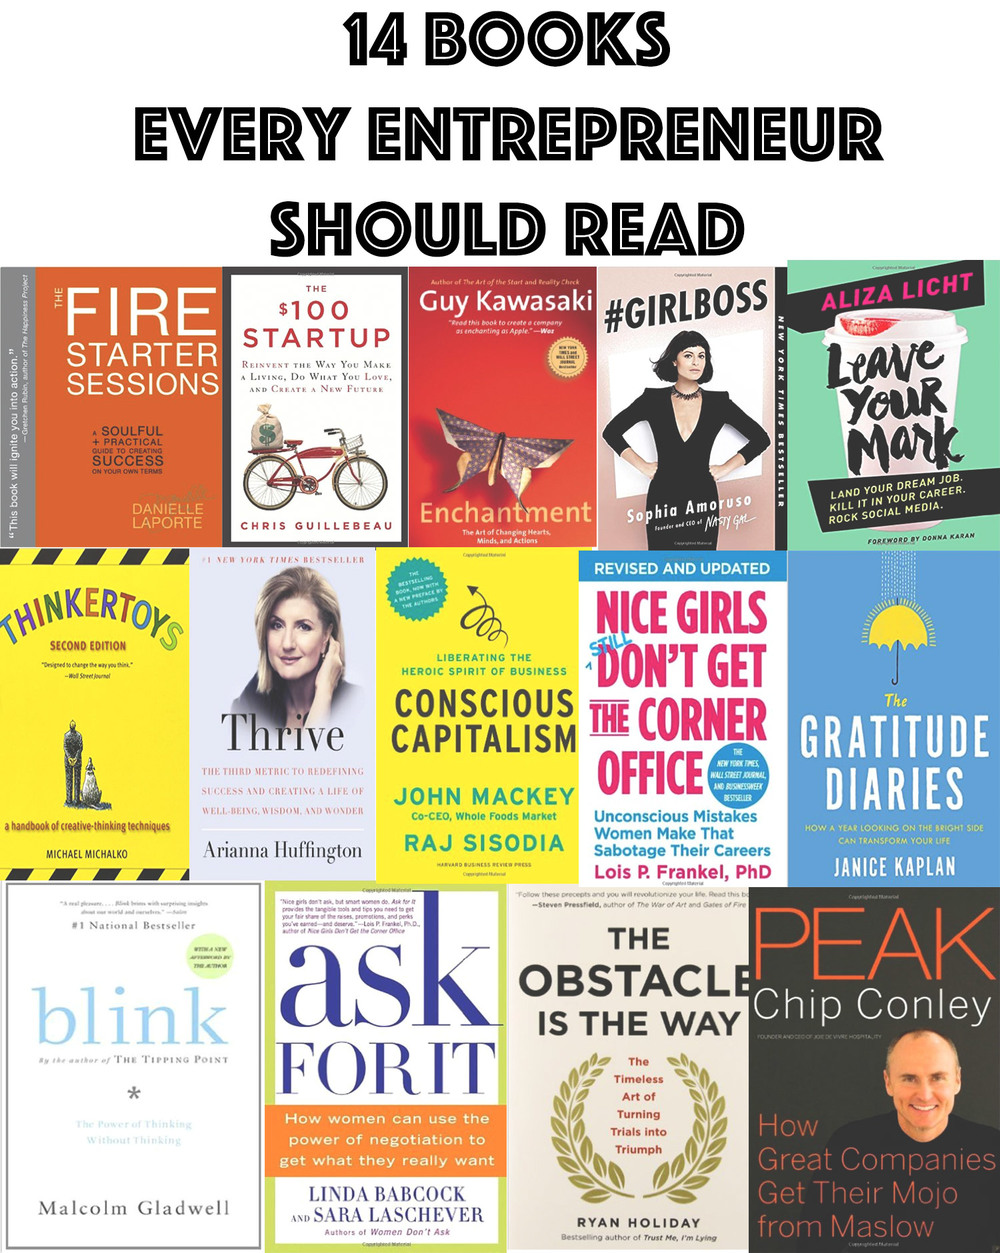 Pin now, read later! 14 books every entrepreneur should read.